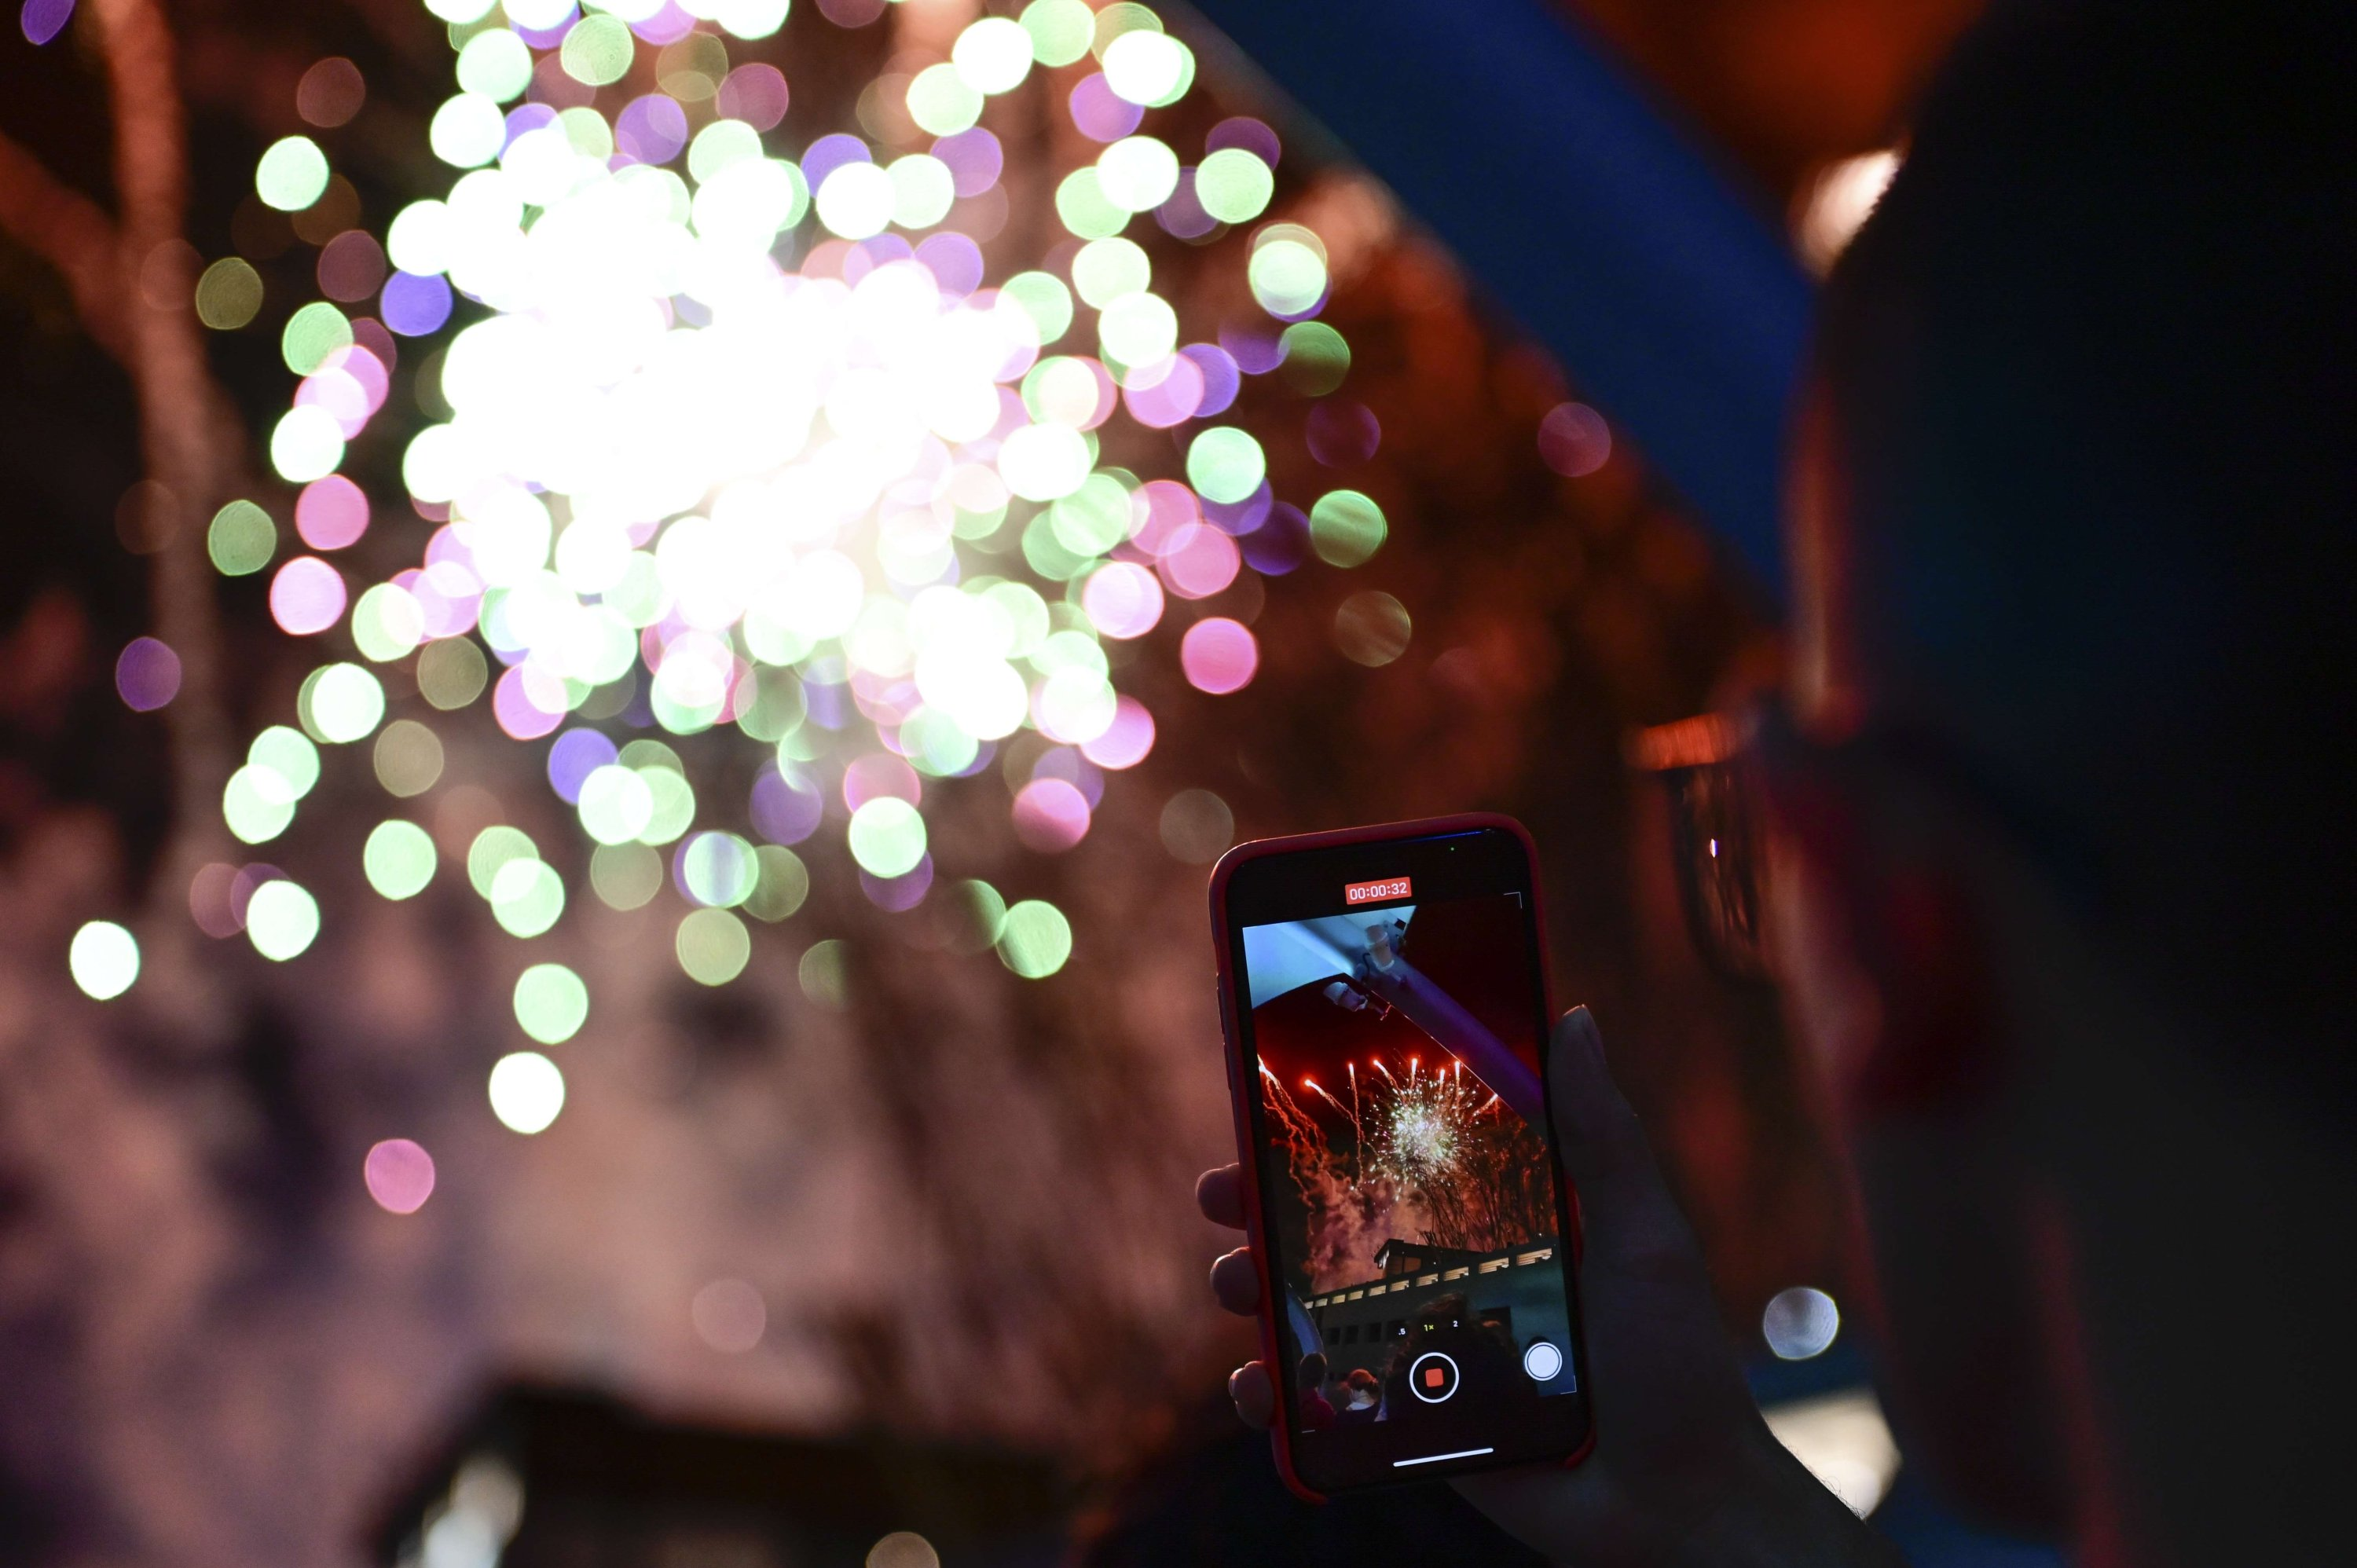 An onlooker takes a video from a cell phone during a fireworks display in preparation for Super Bowl LV, Tampa, Florida, Feb. 06, 2021. (AFP Photo)